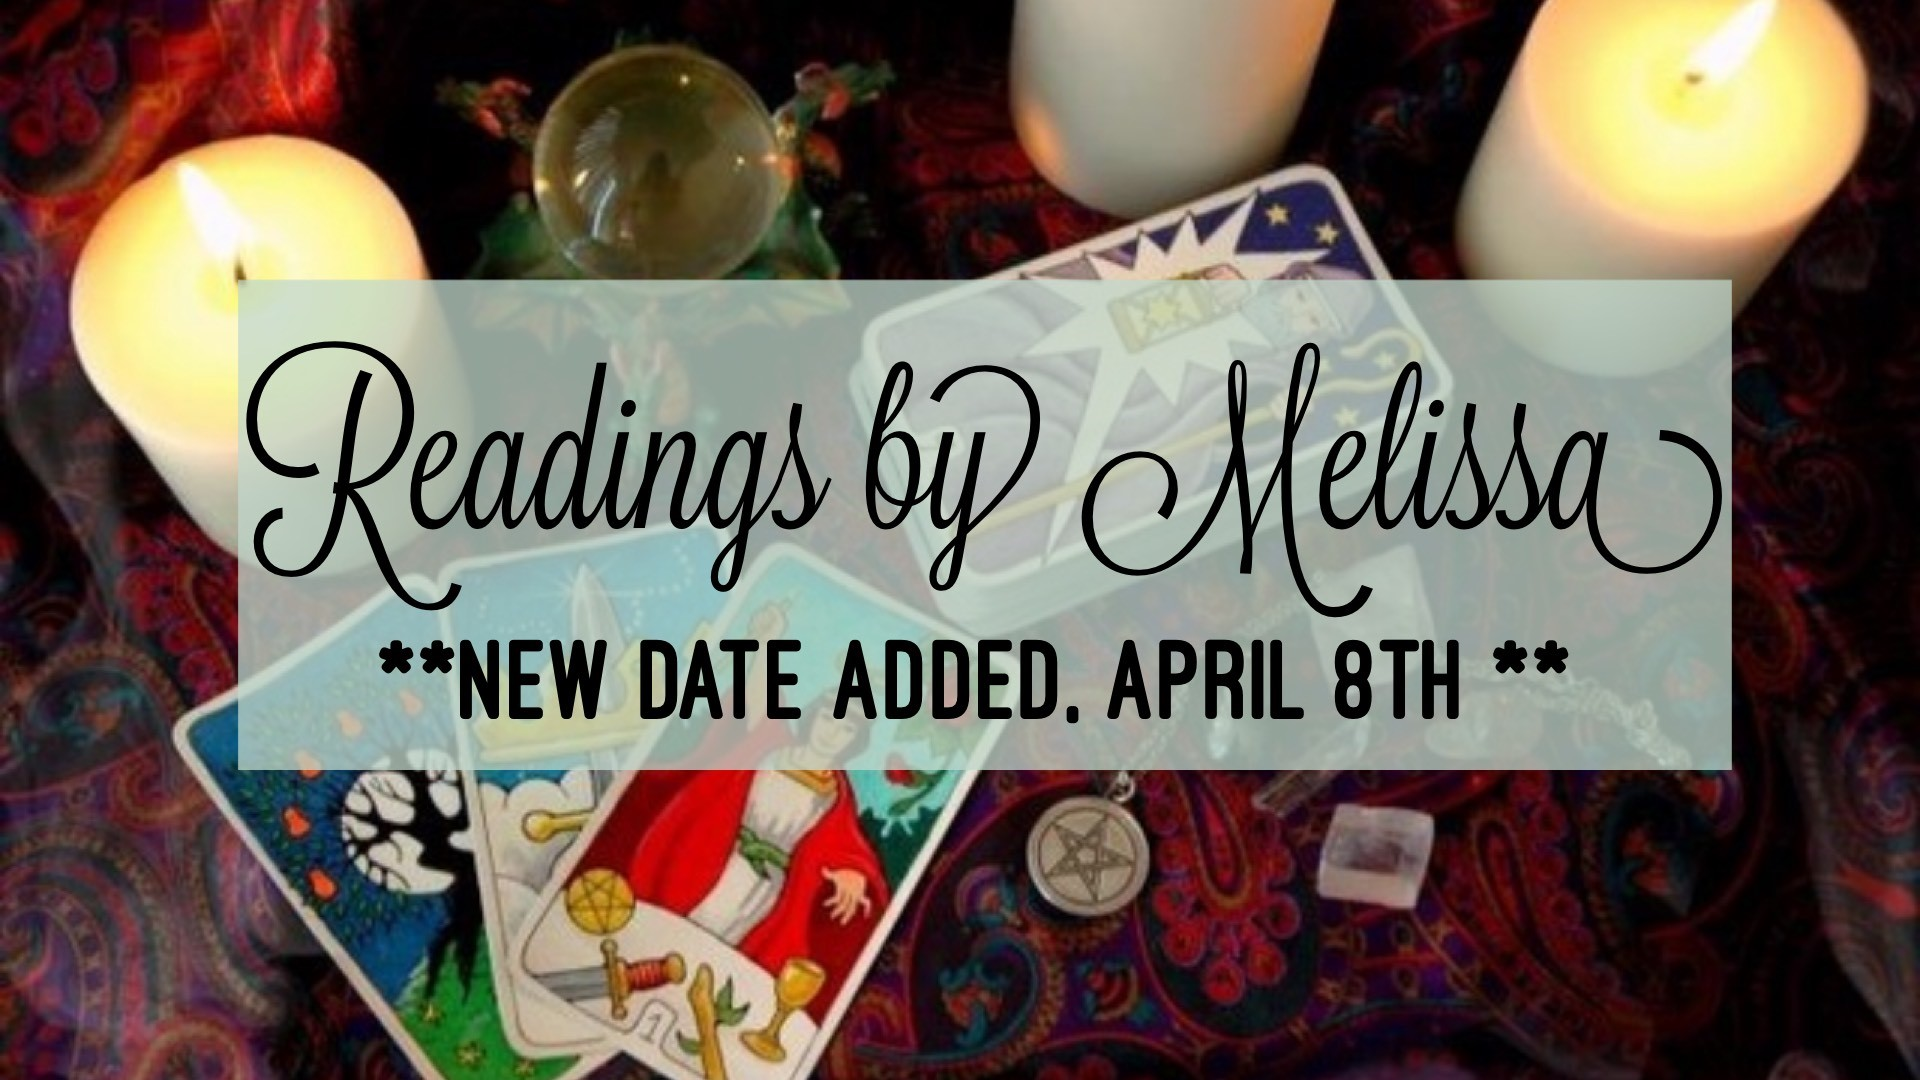 Readings by Melissa